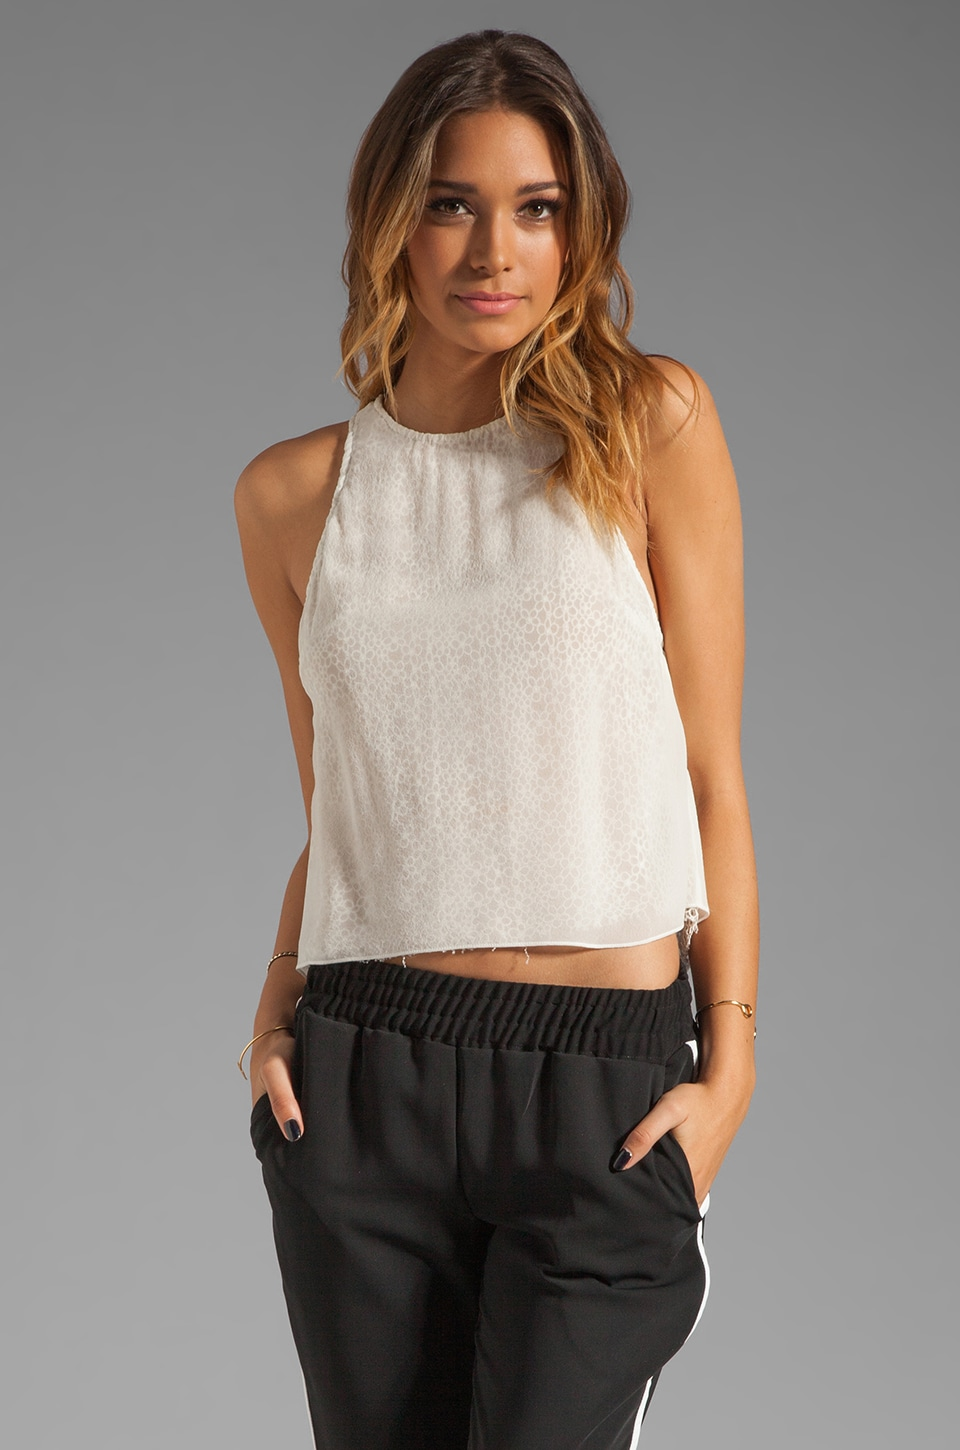 BEC&BRIDGE Hidden Daisy Tank en Ivory